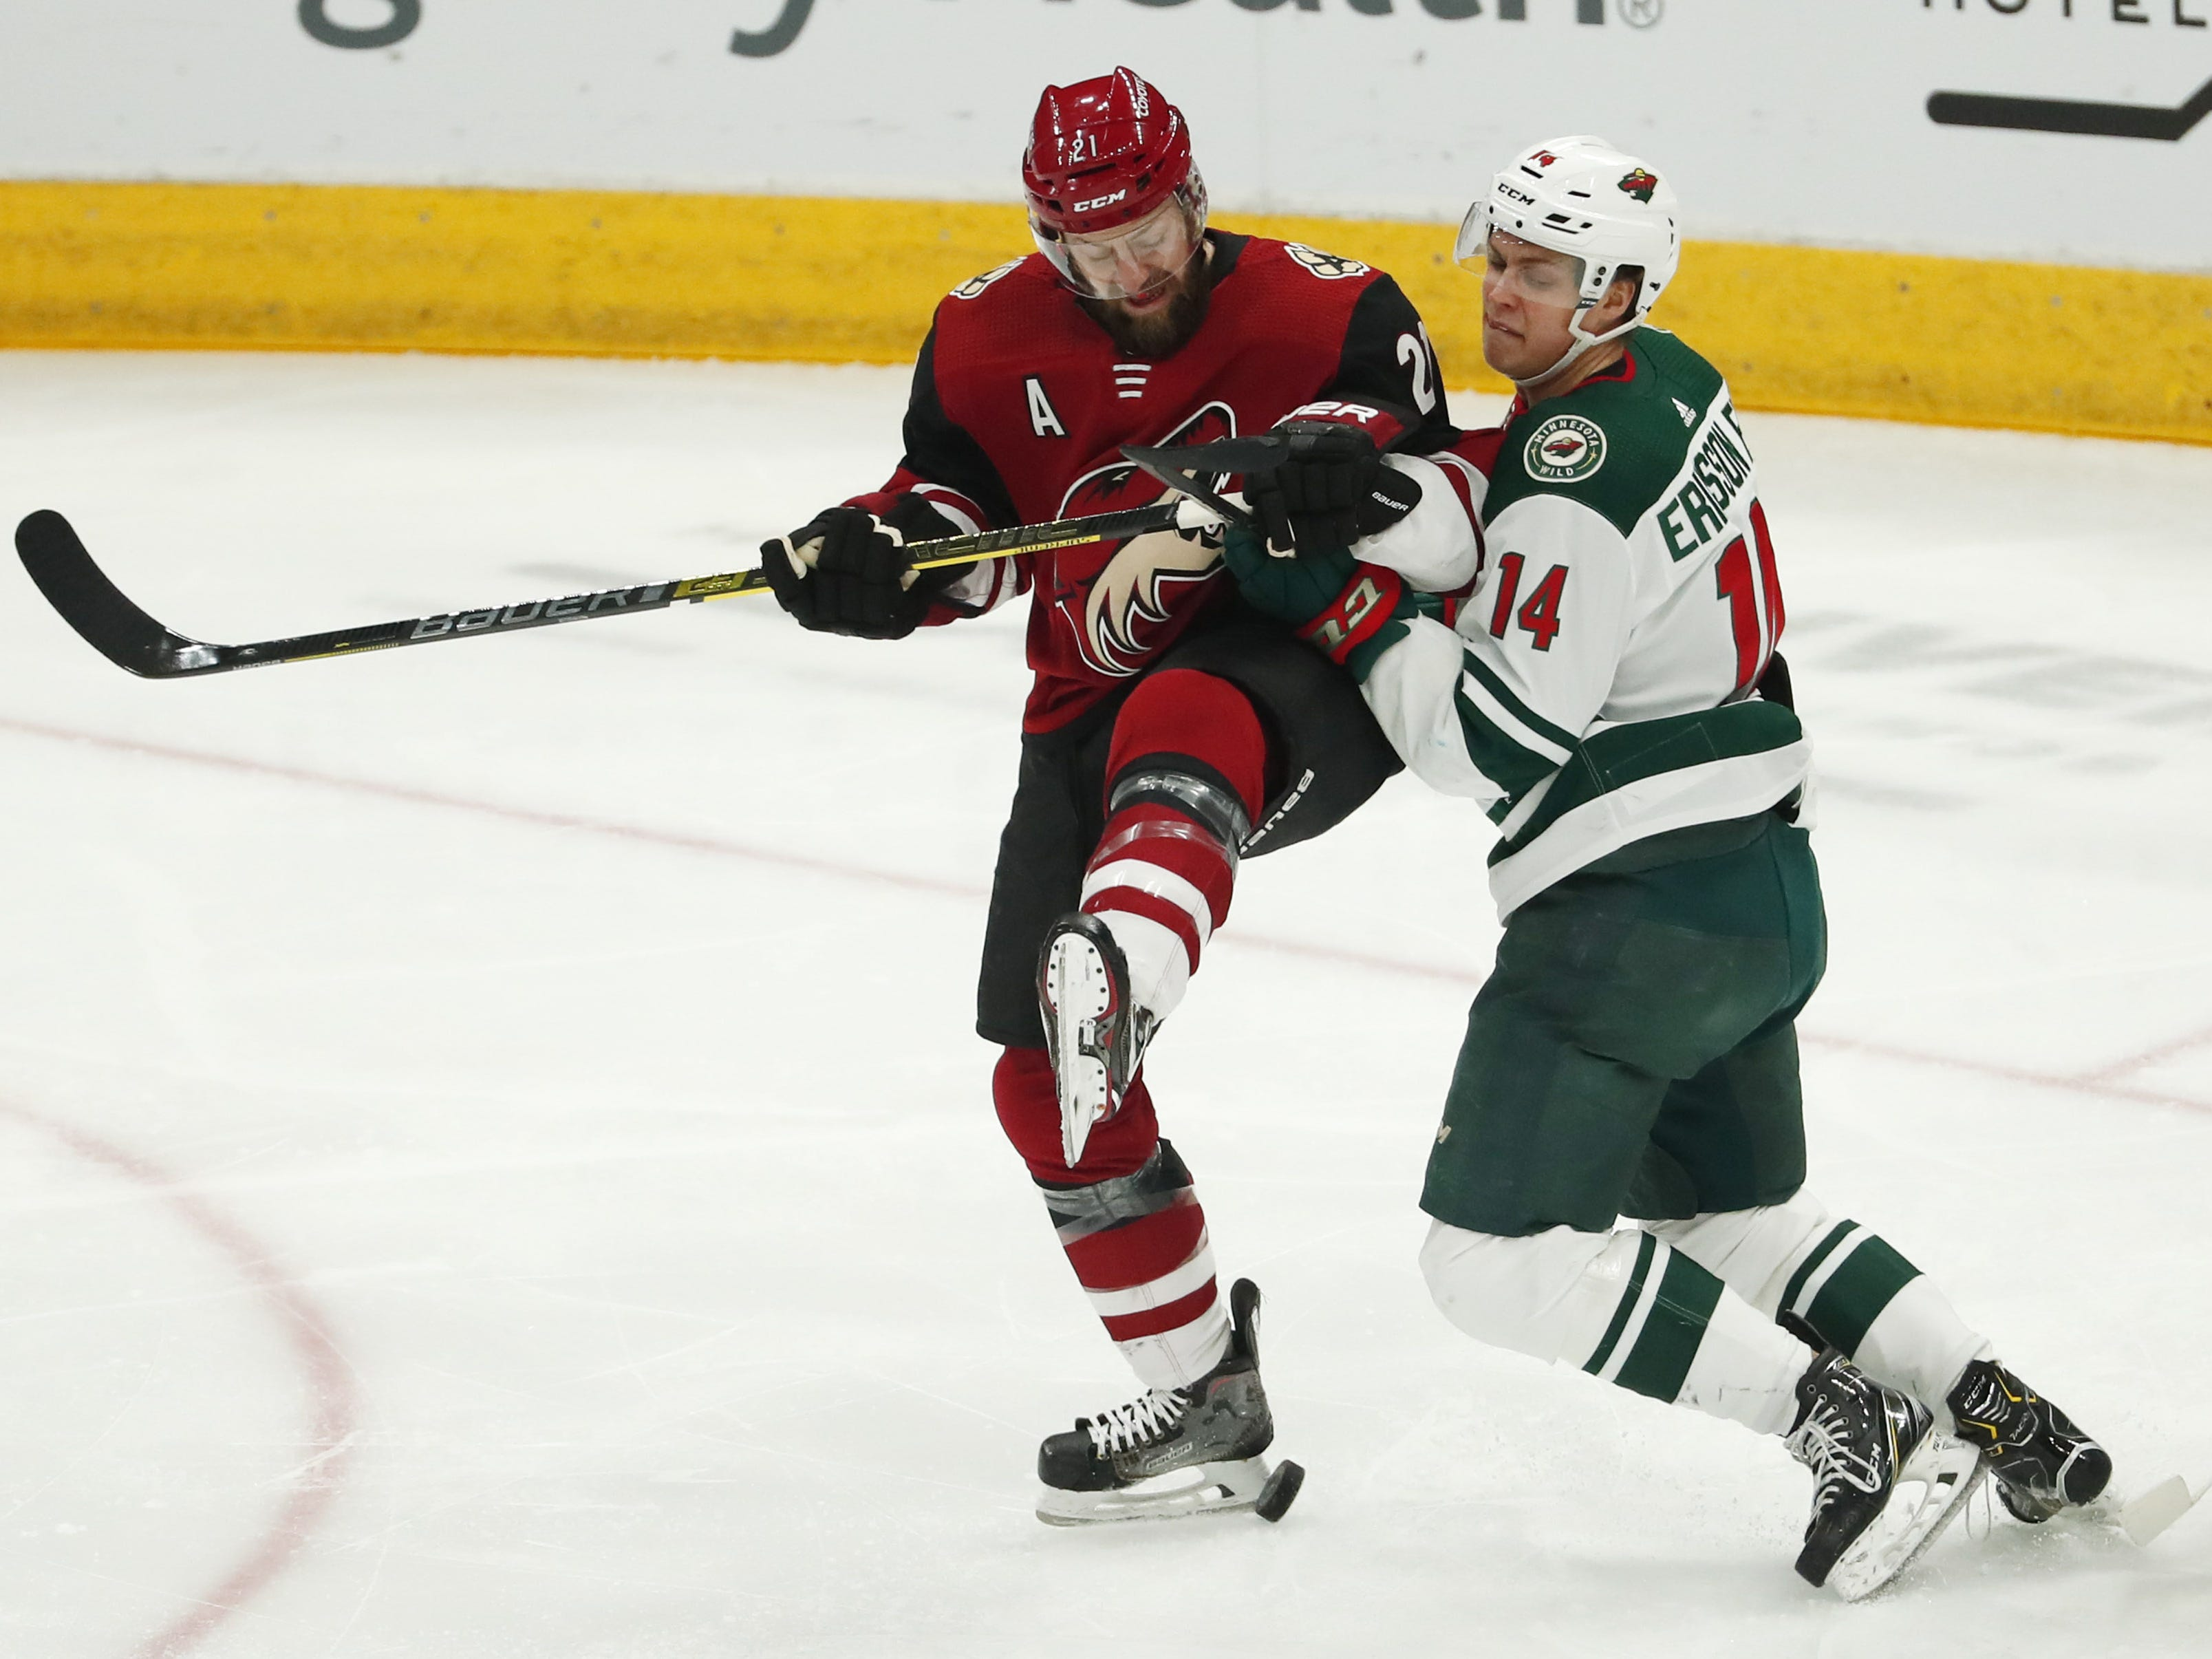 Arizona Coyotes center Derek Stepan (21) is checked by Minnesota Wild center Joel Eriksson Ek (14) during the first period in Glendale March 31, 2019.